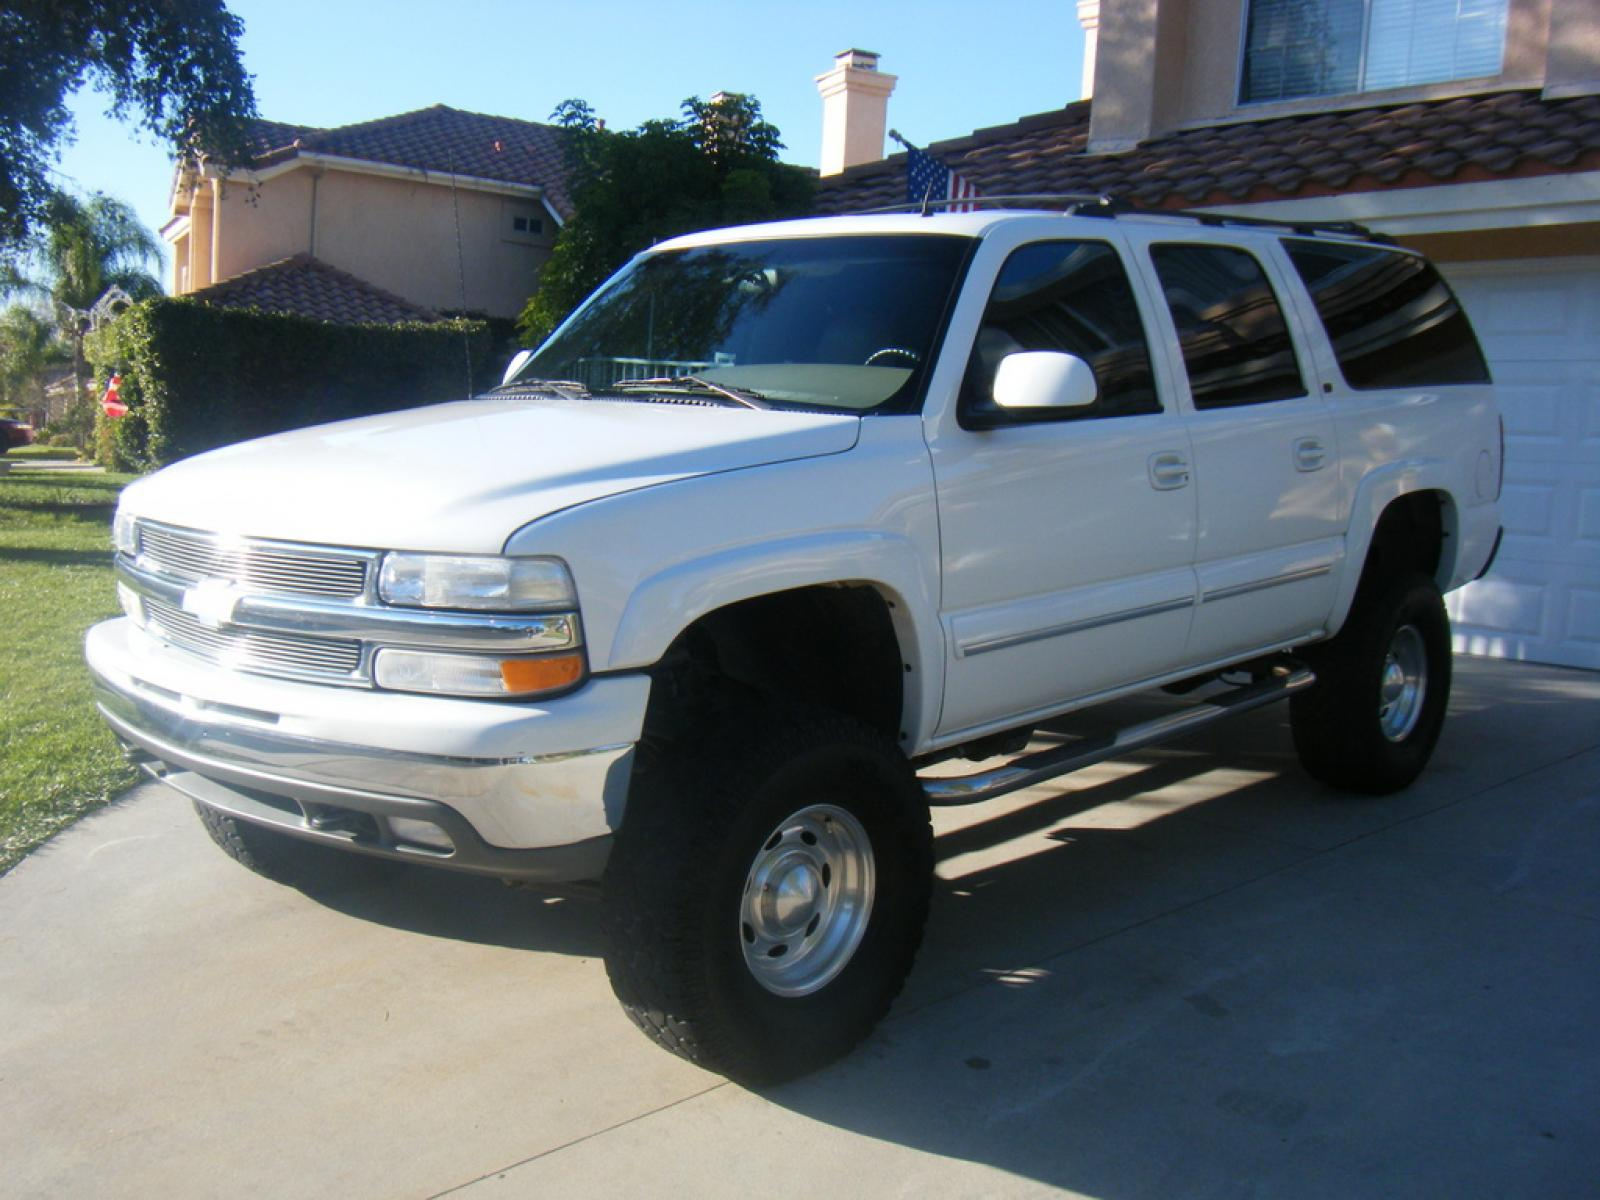 2002 Chevrolet Suburban Information and photos ZombieDrive